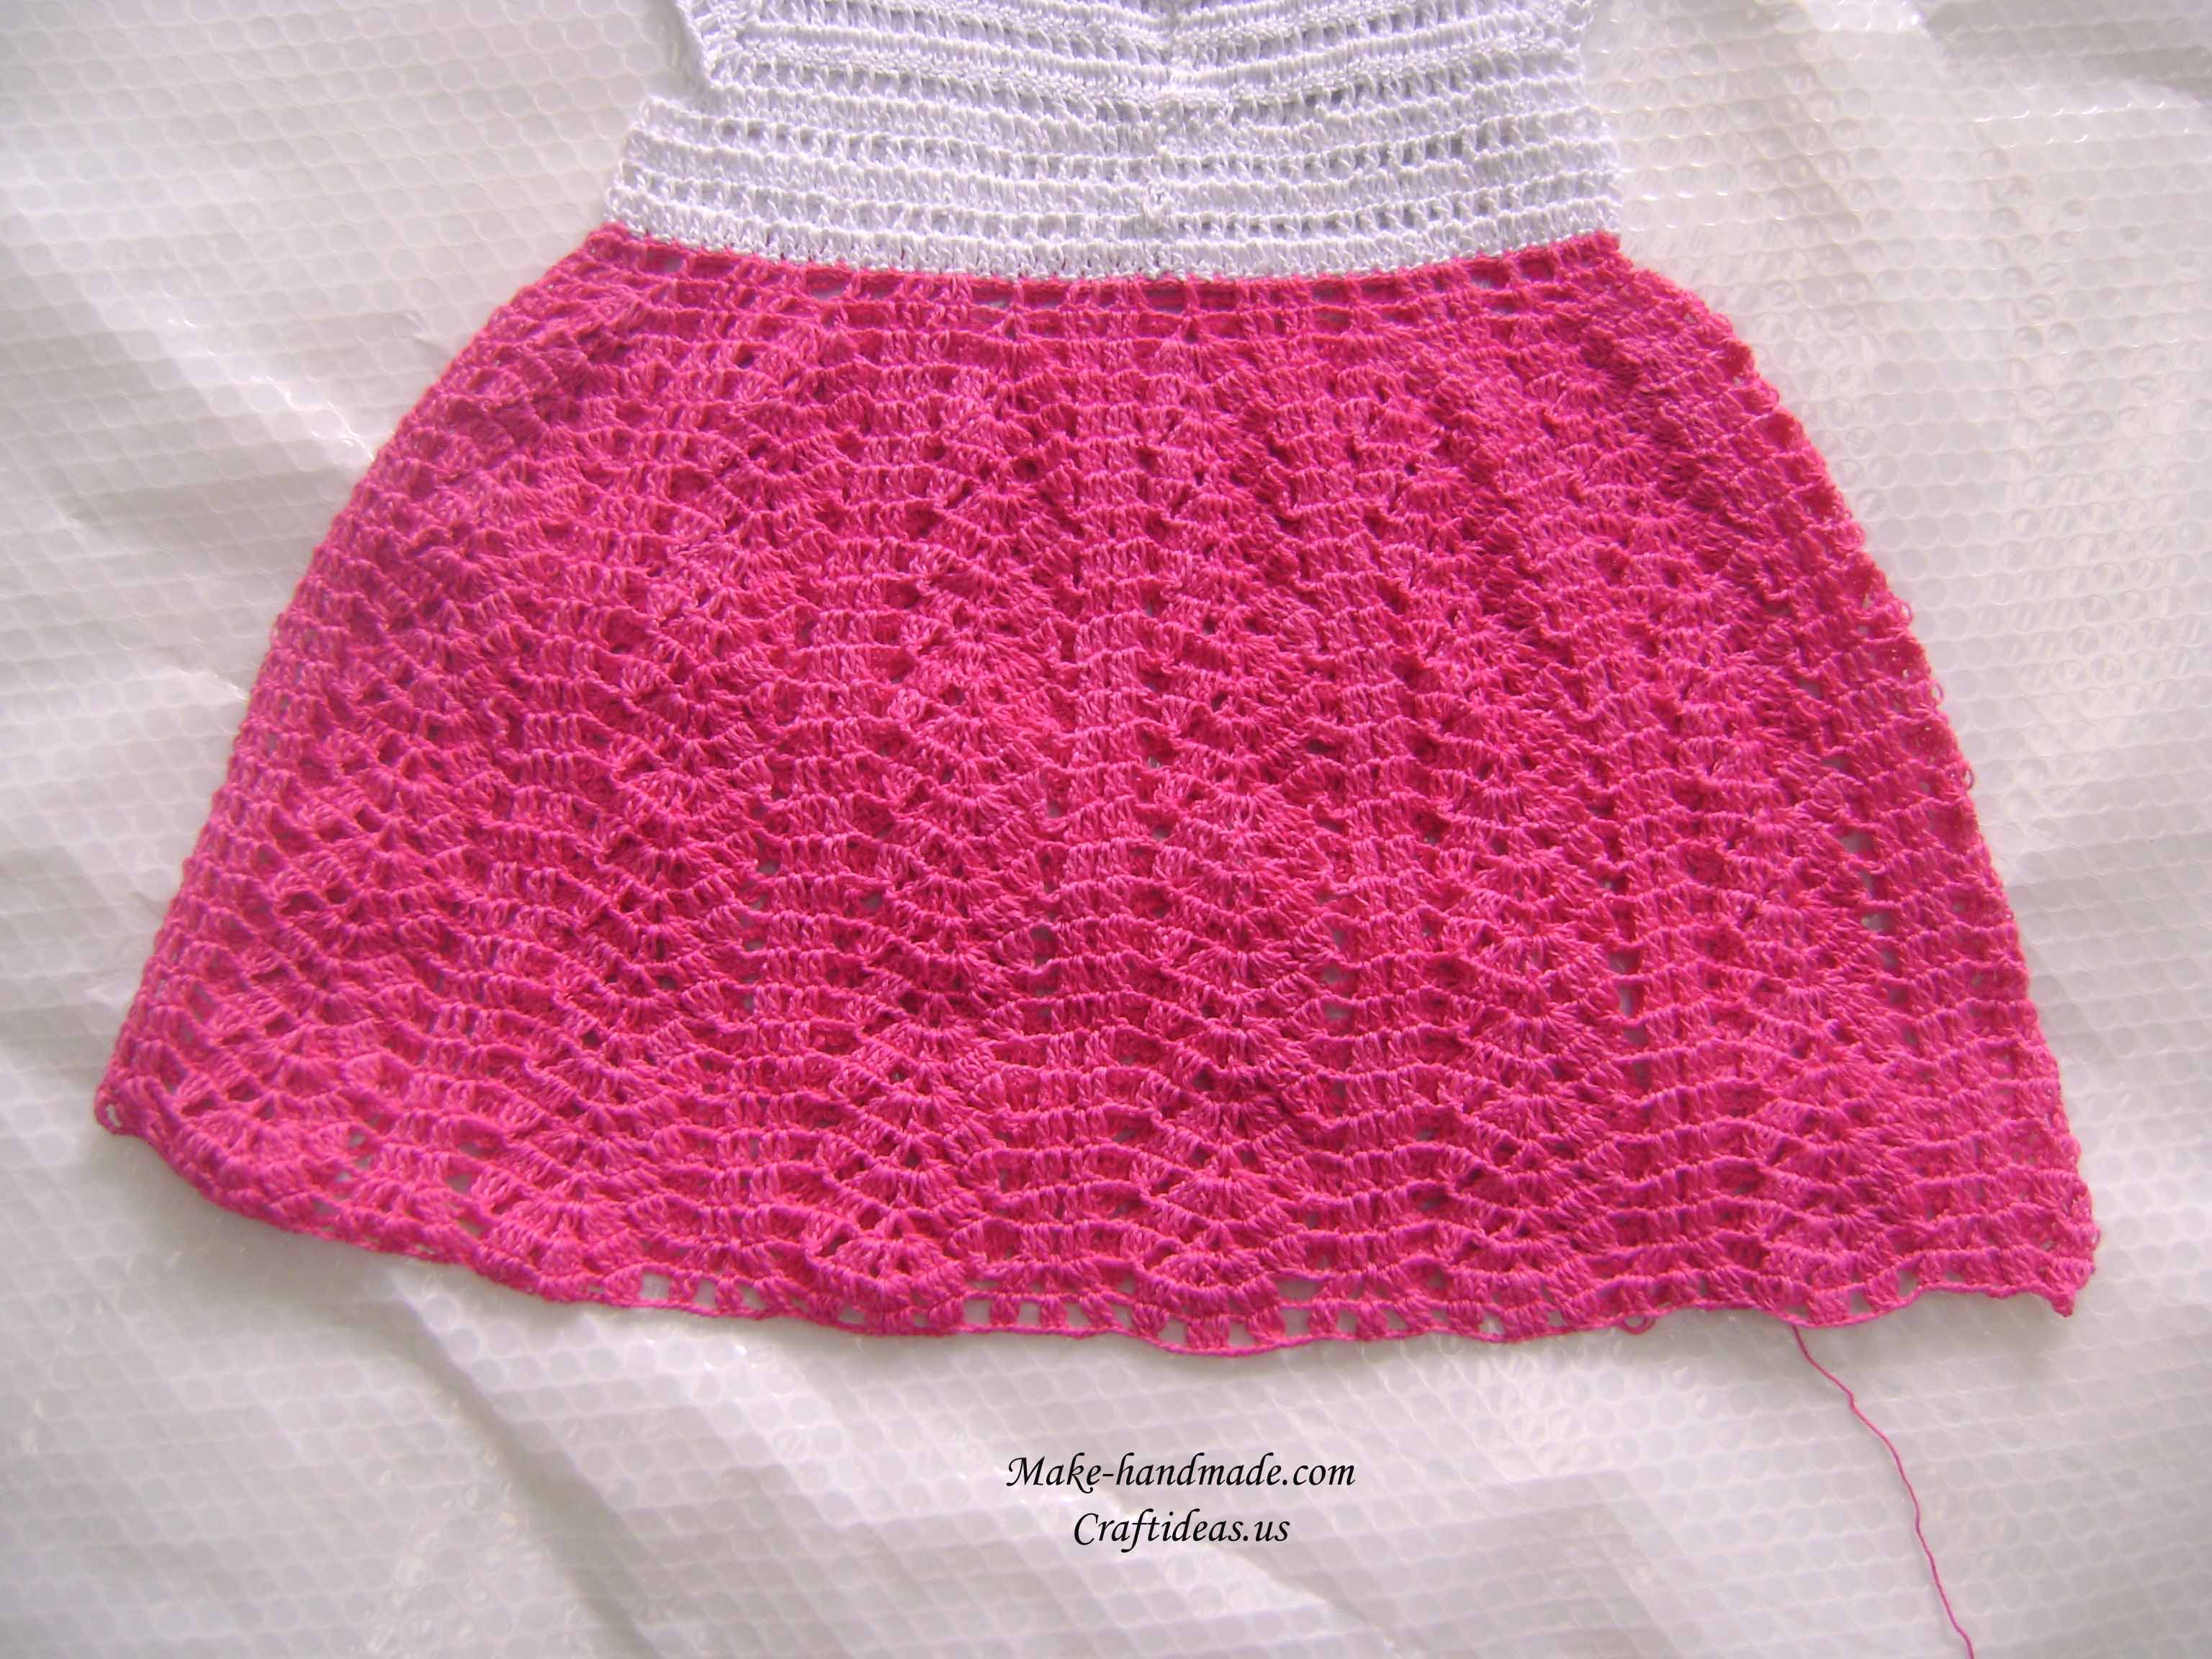 crochet summer baby dress make handmade, crochet, craft